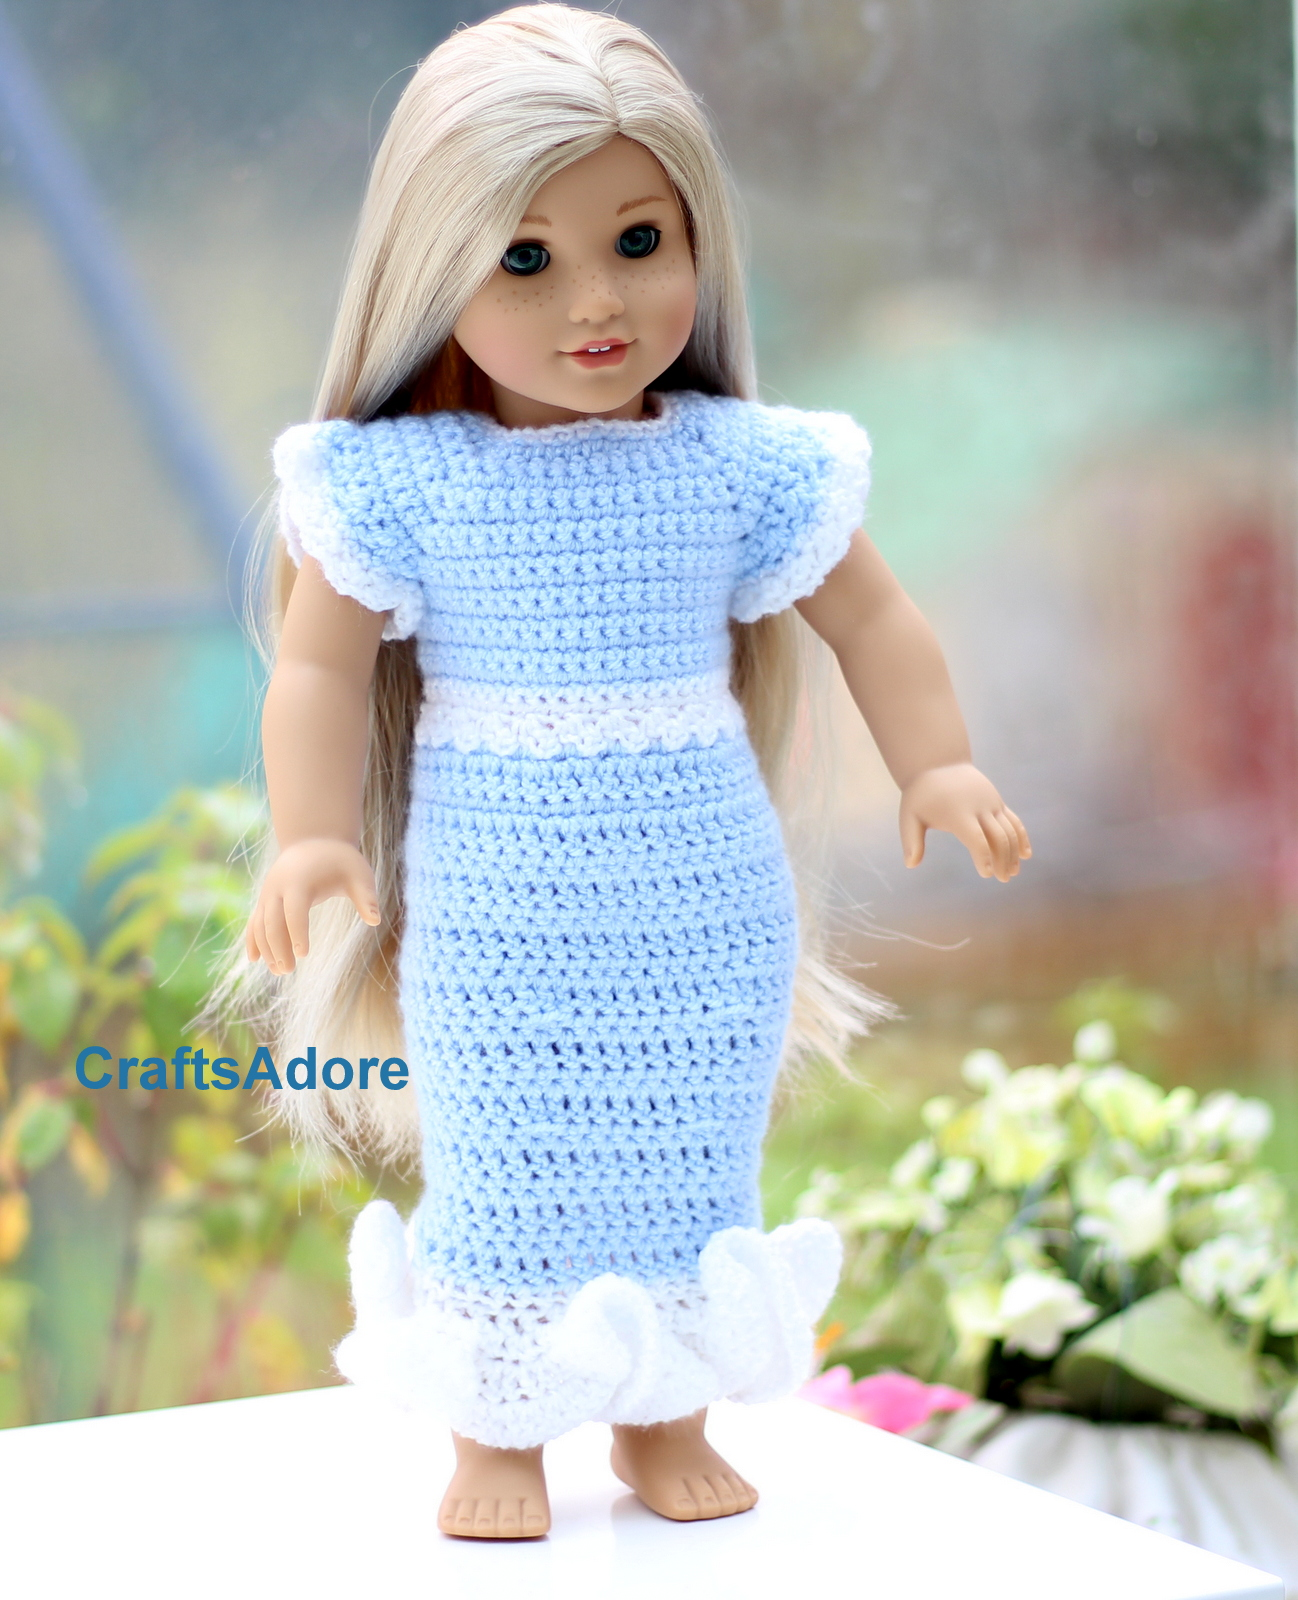 Free Crochet Patterns For American Girl Doll Amazing Design Inspiration